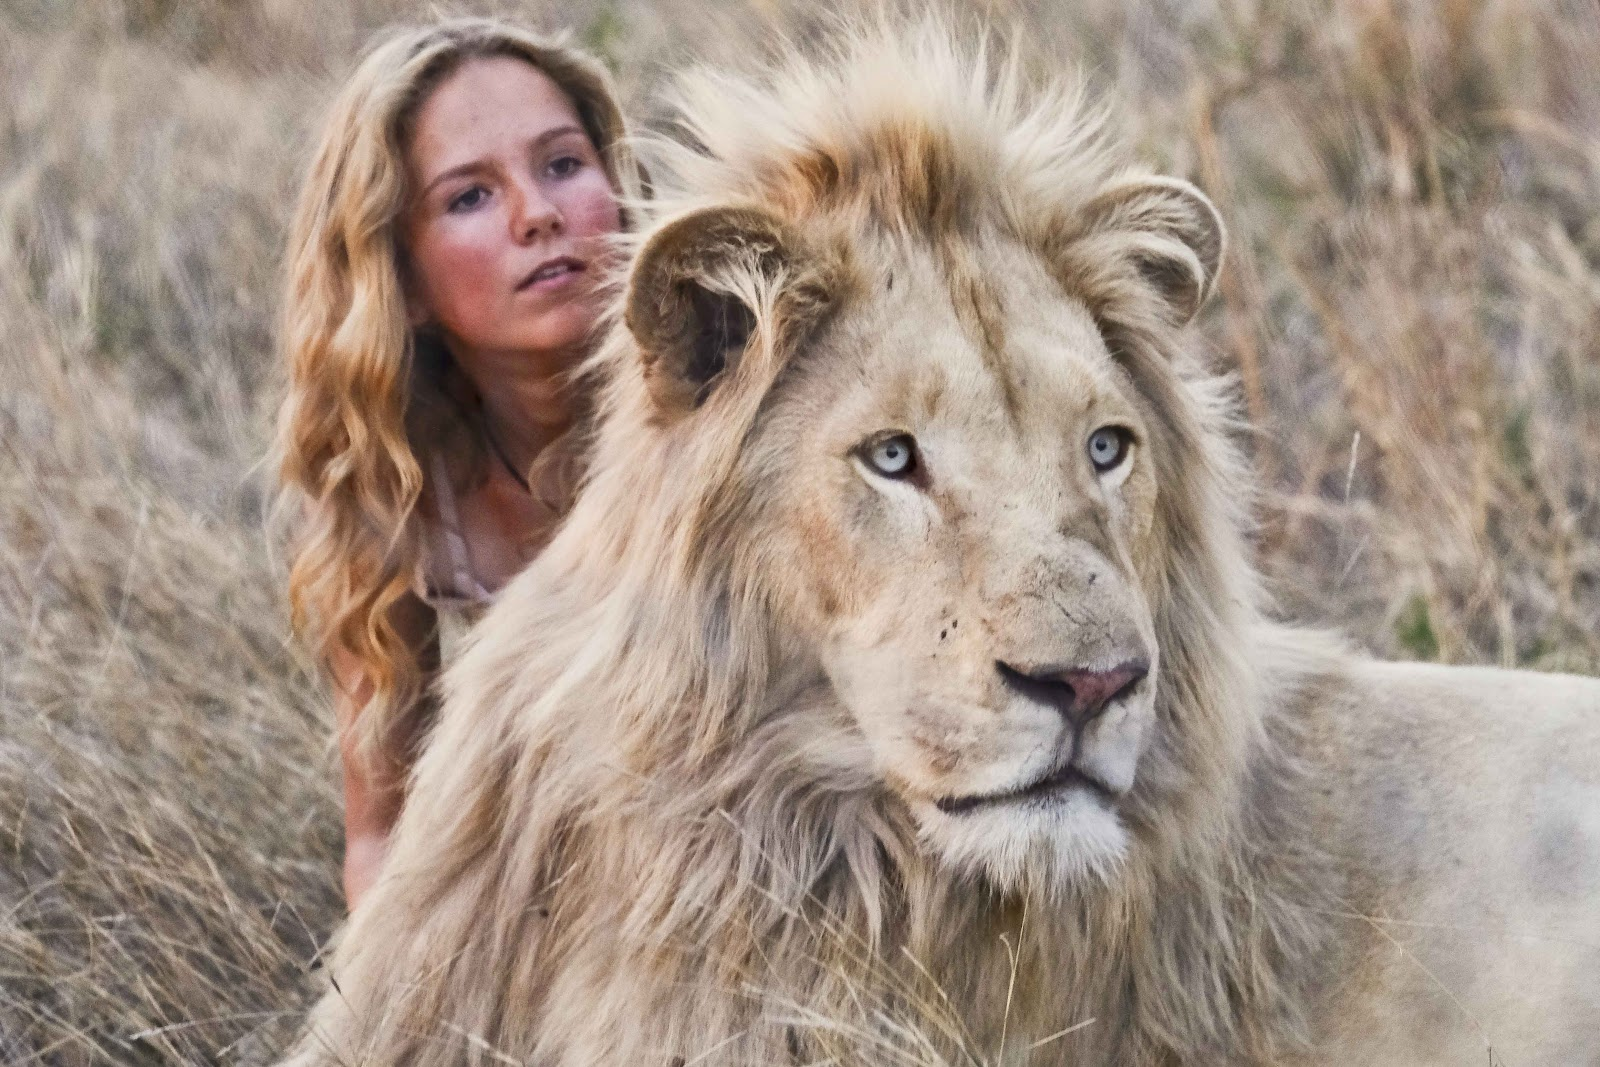 Movie still from Mia and the White Lion with actress Daniah De Villiers.